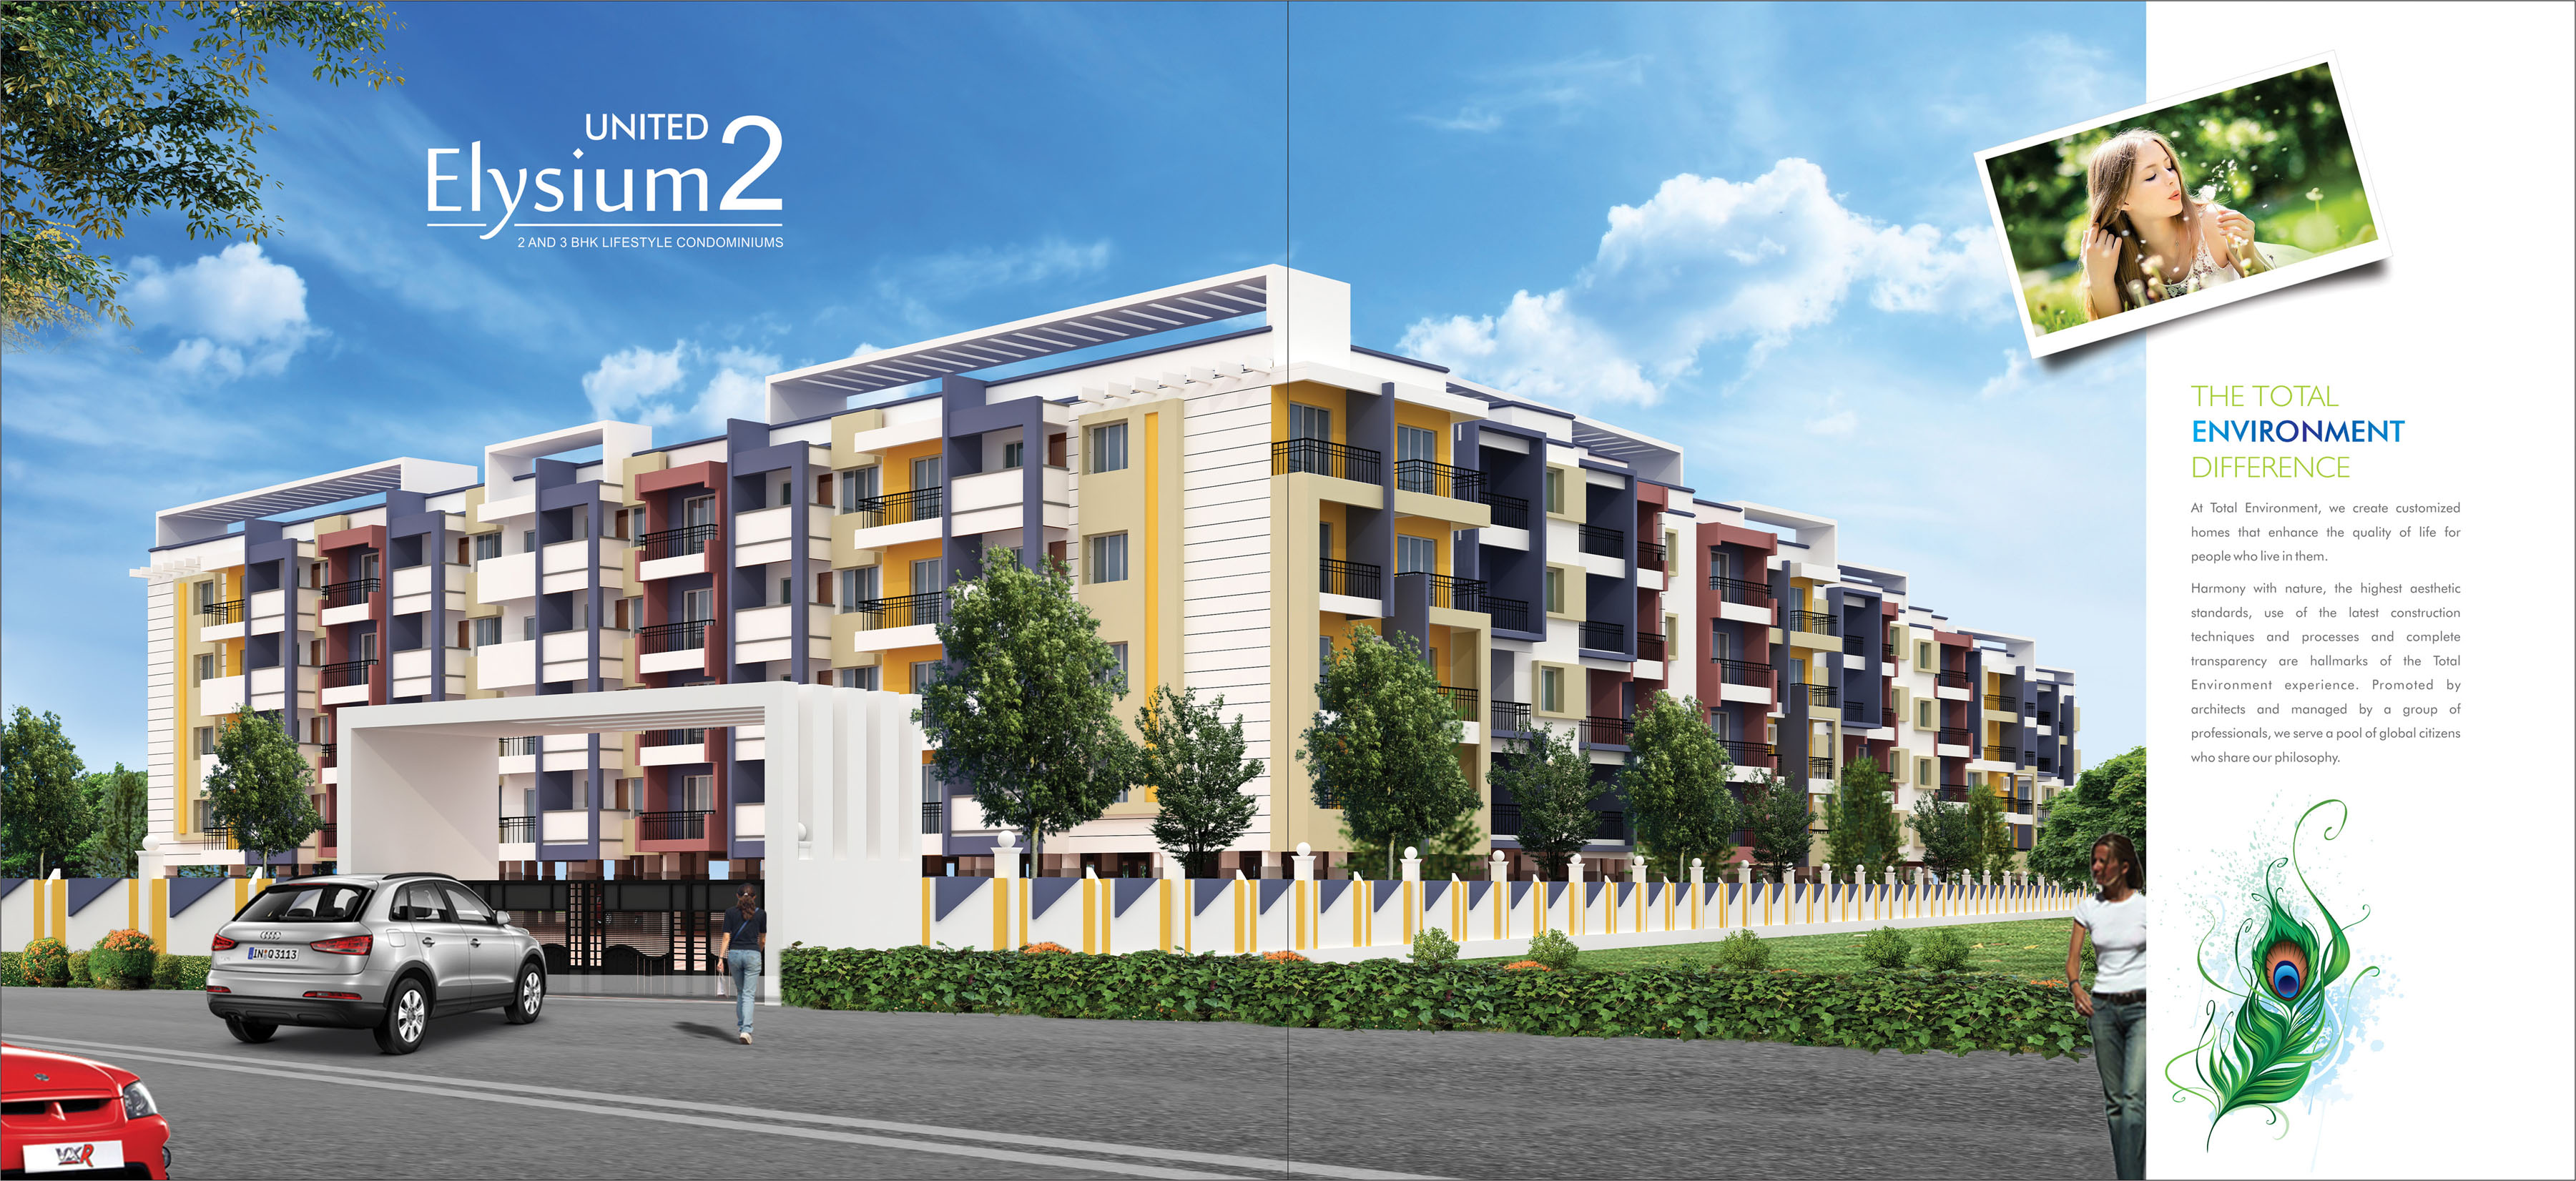 2 & 3Bhk Flats for sale in Whitefield,Bangalore Call on 9844919641